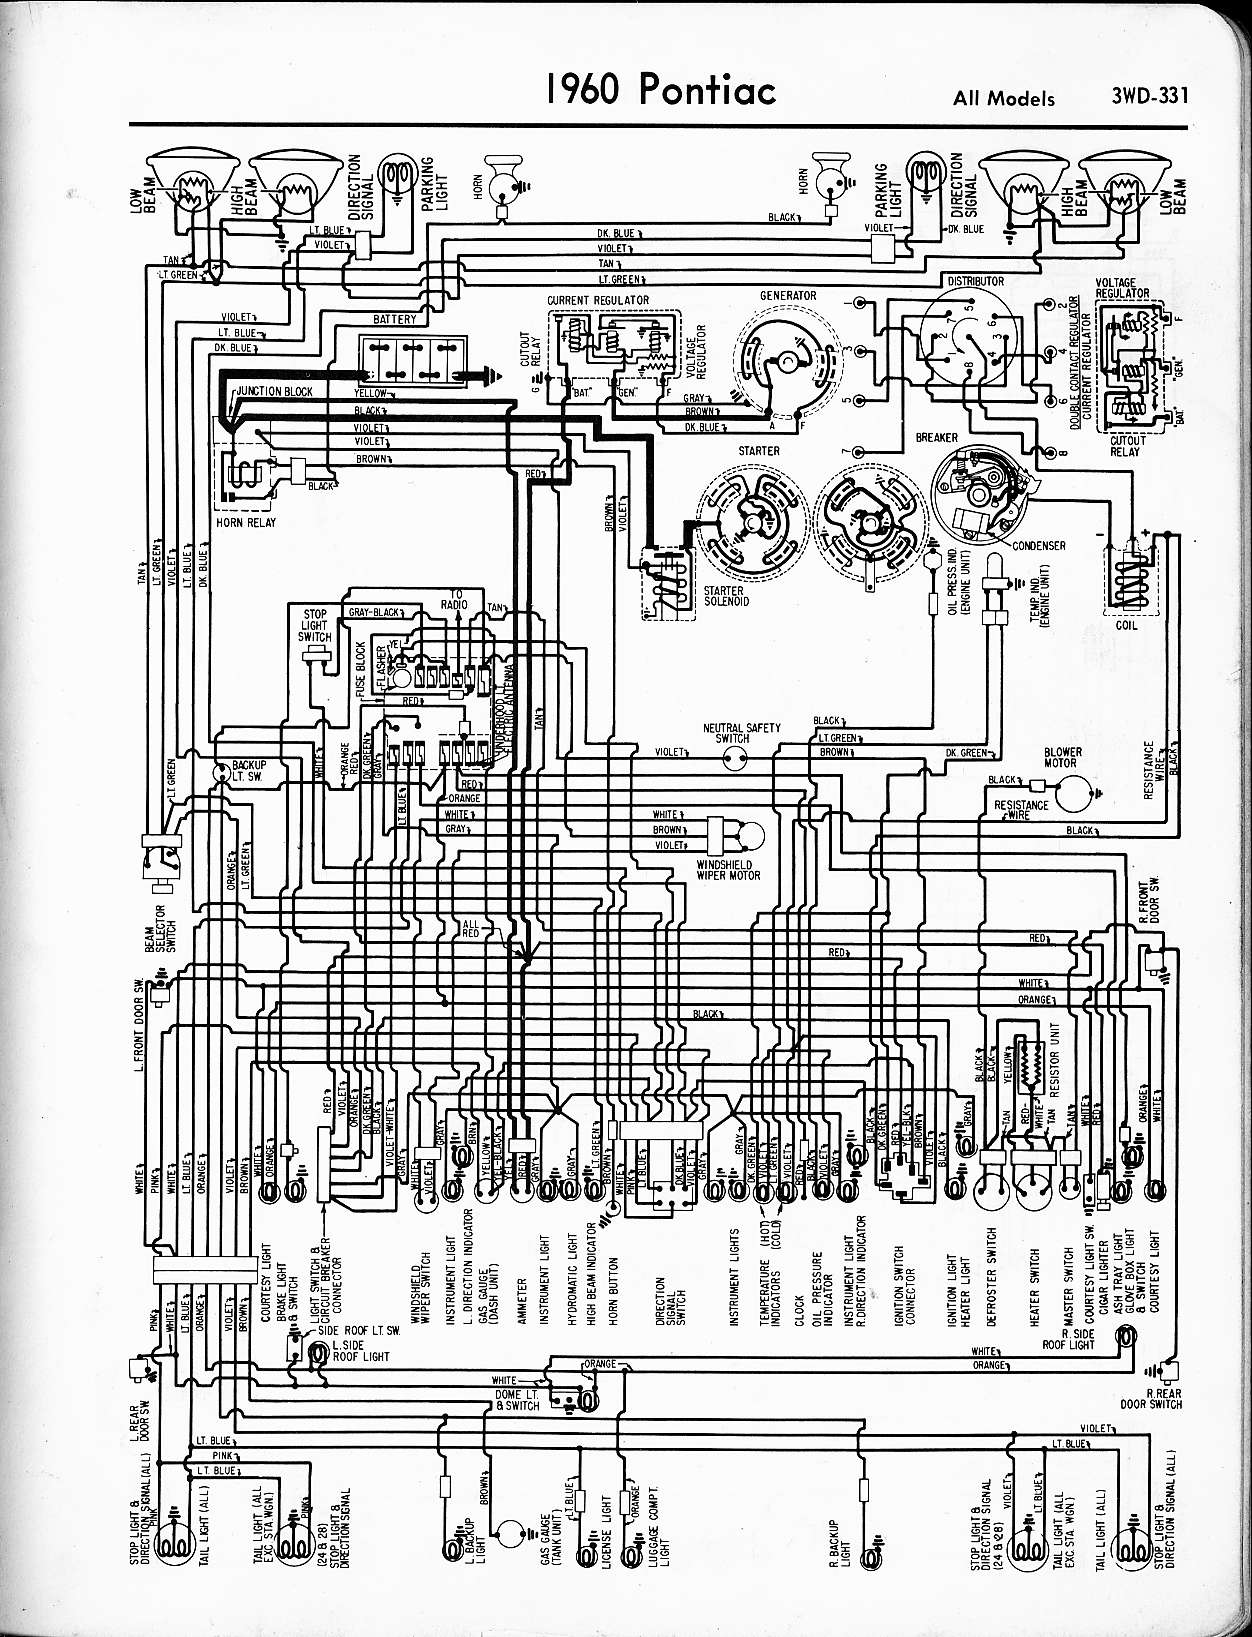 1966 pontiac wiring diagram detailed schematics diagram rh lelandlutheran  com 68 GTO Dash Wiring Diagram 1970 gto wiring diagram